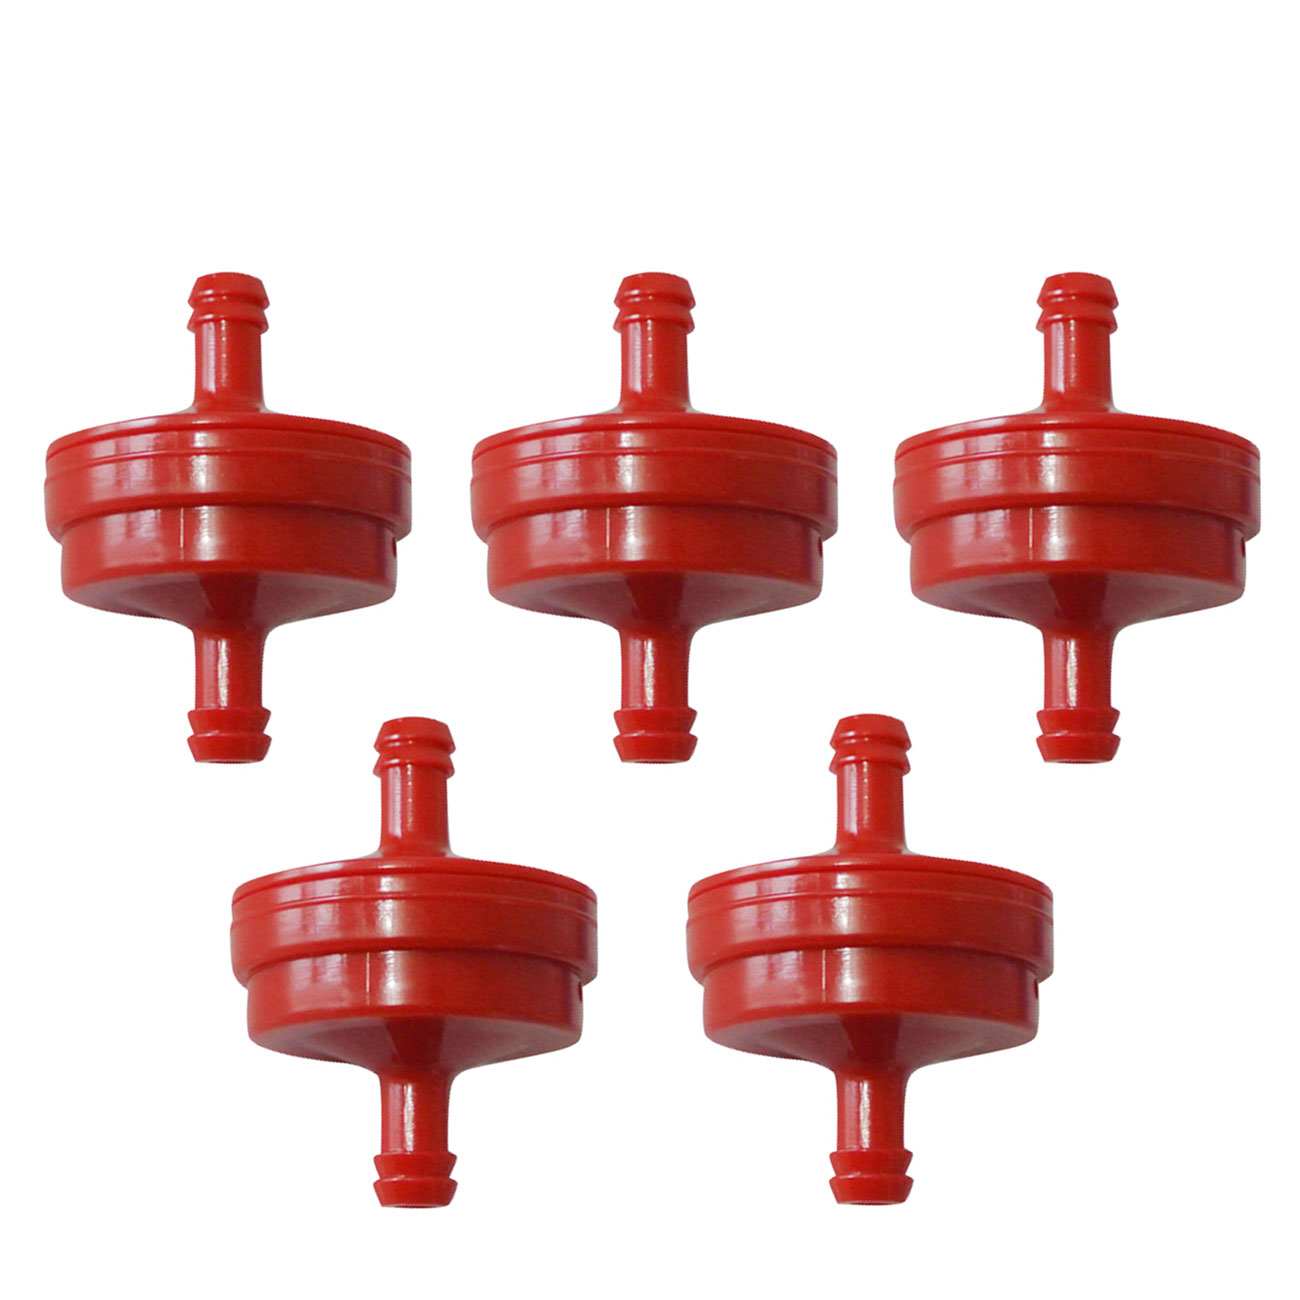 5xGenuine Inline Fuel Filter Red Fits Briggs & Stratton 298090 395018 Lawn Mower